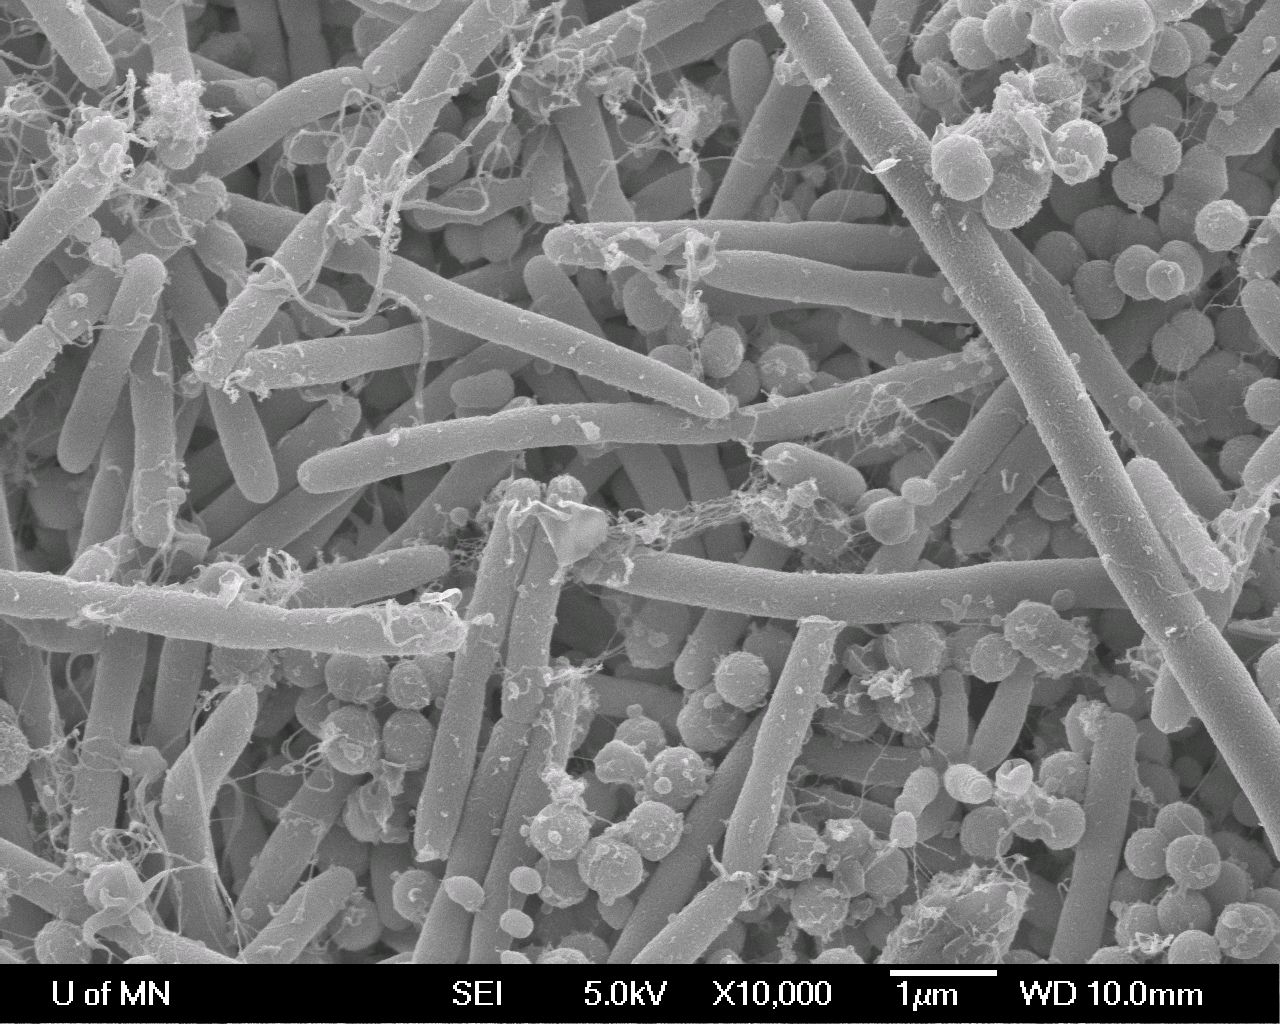 Biofilm on Hydroxyapatite